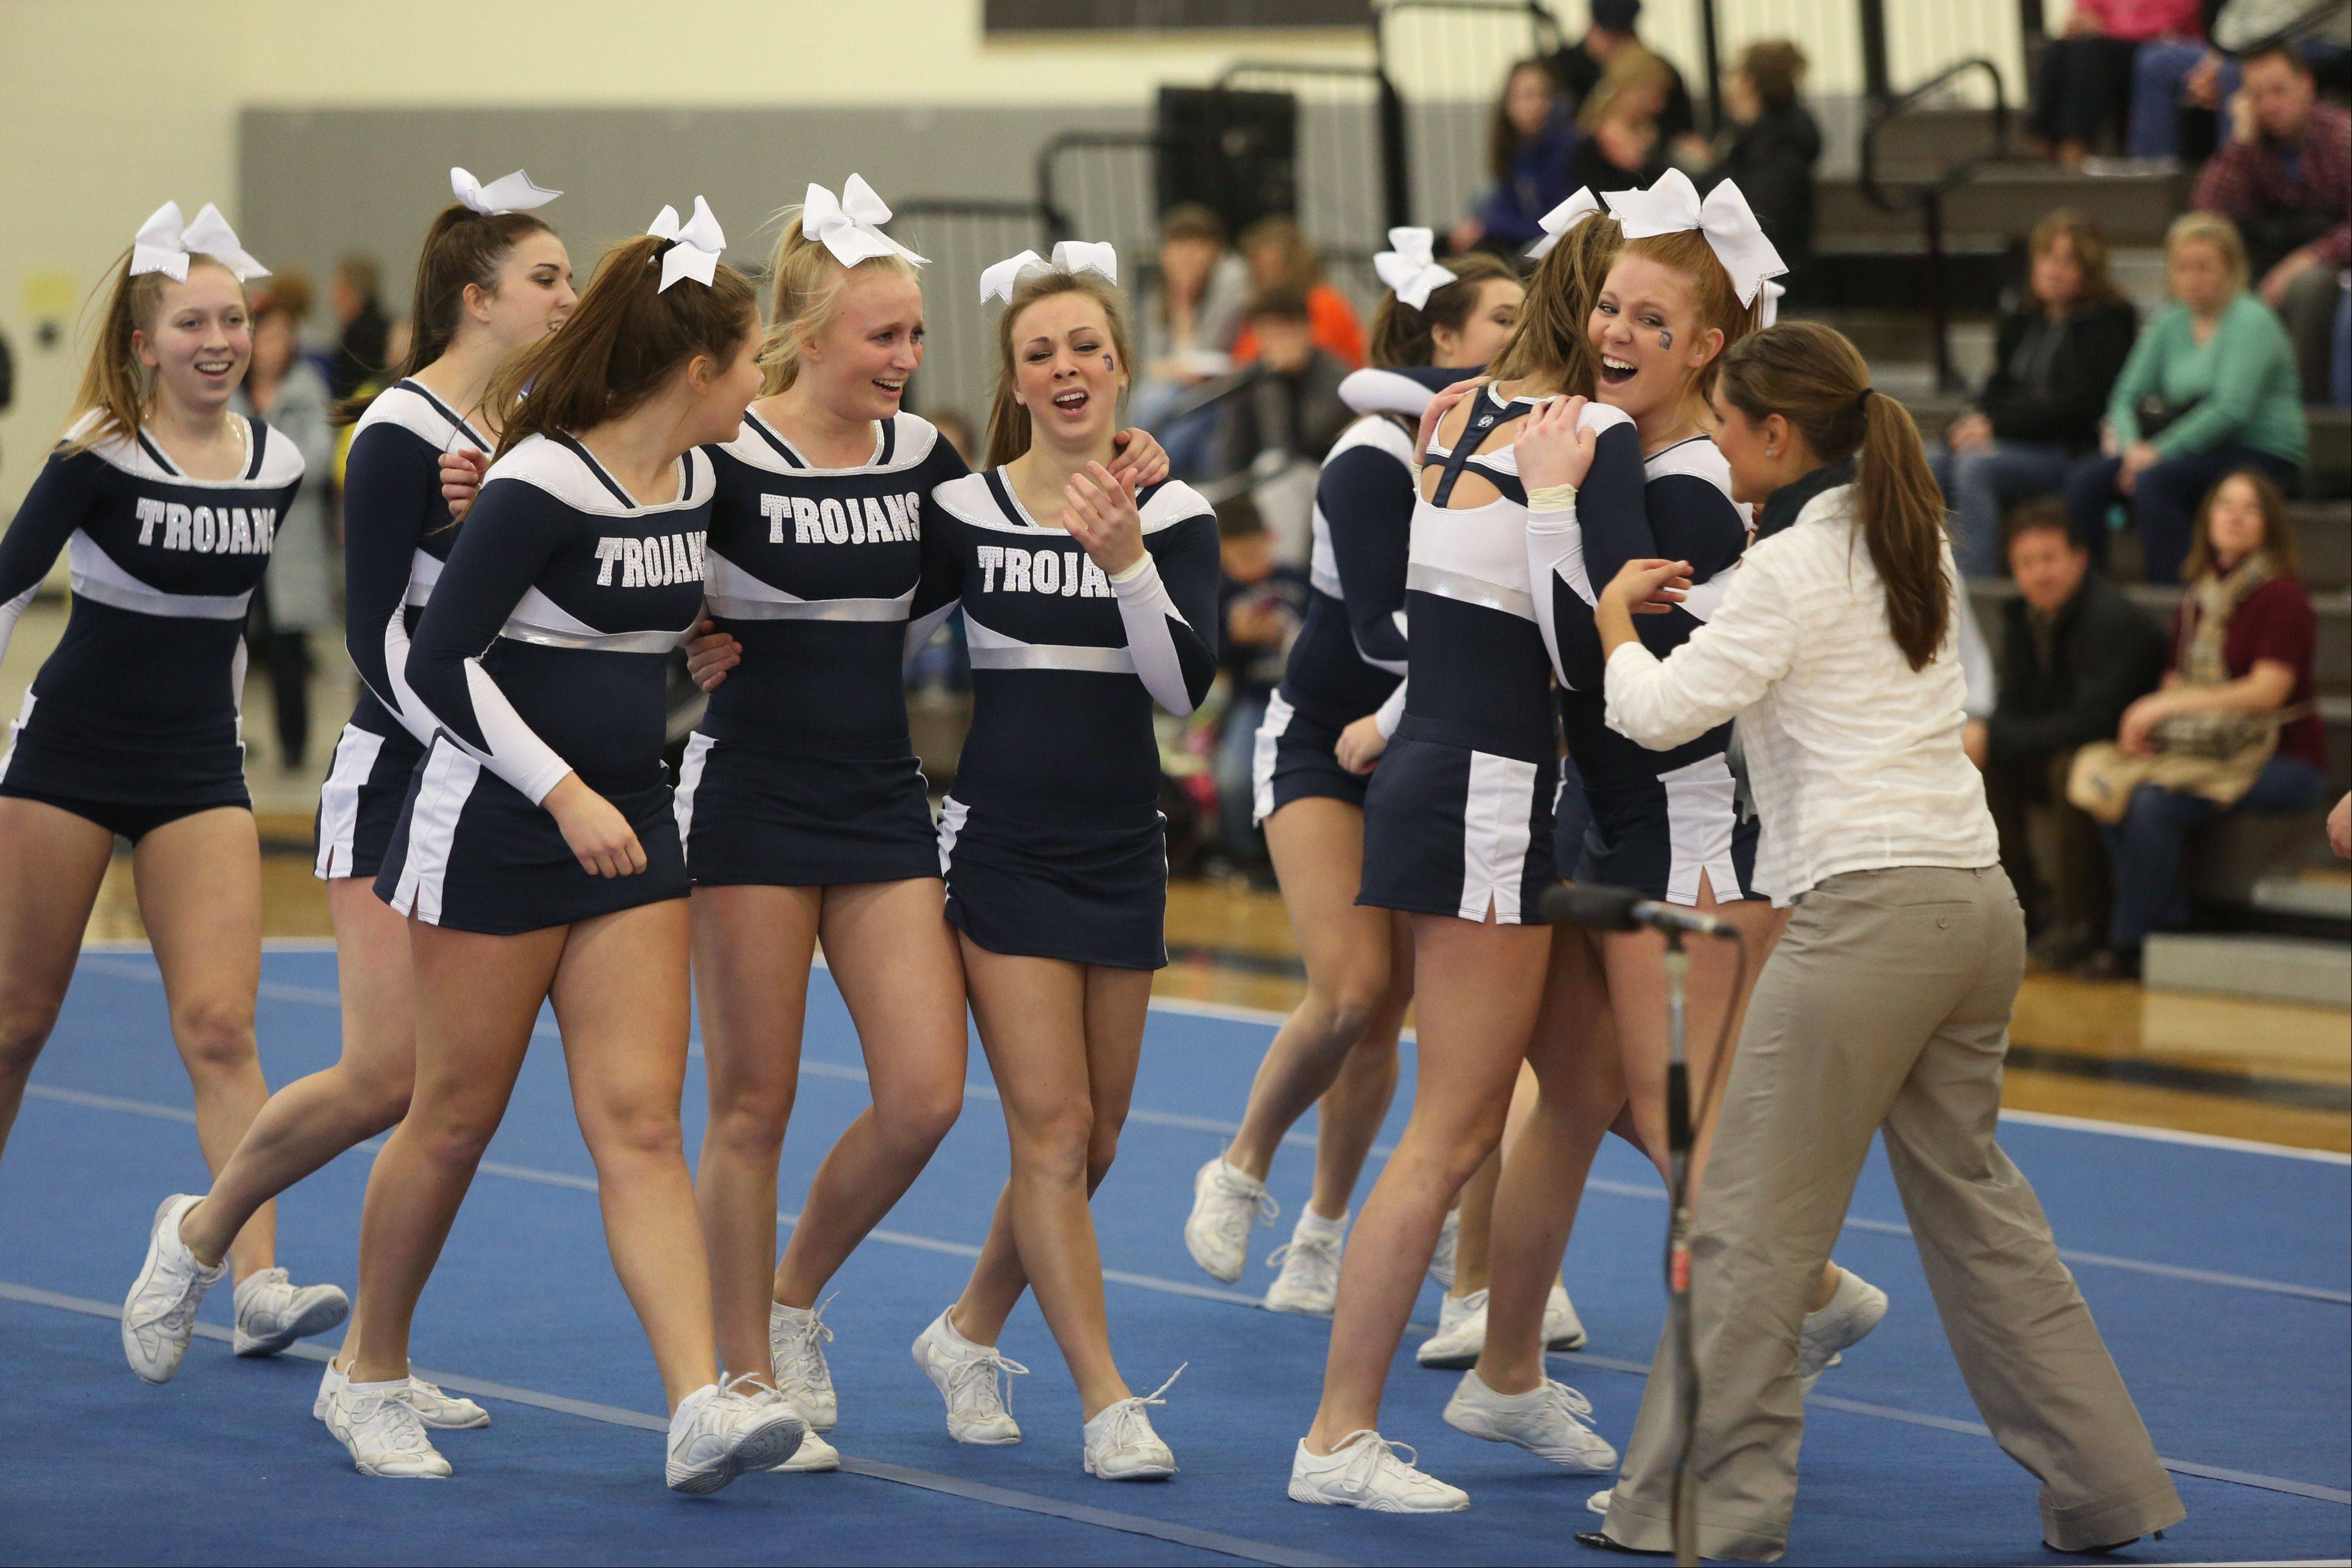 Cary-Grove High School celebrates after competing in the Large Team category during the IHSA Cheerleading Sectional Sunday hosted by Grayslake North High School.